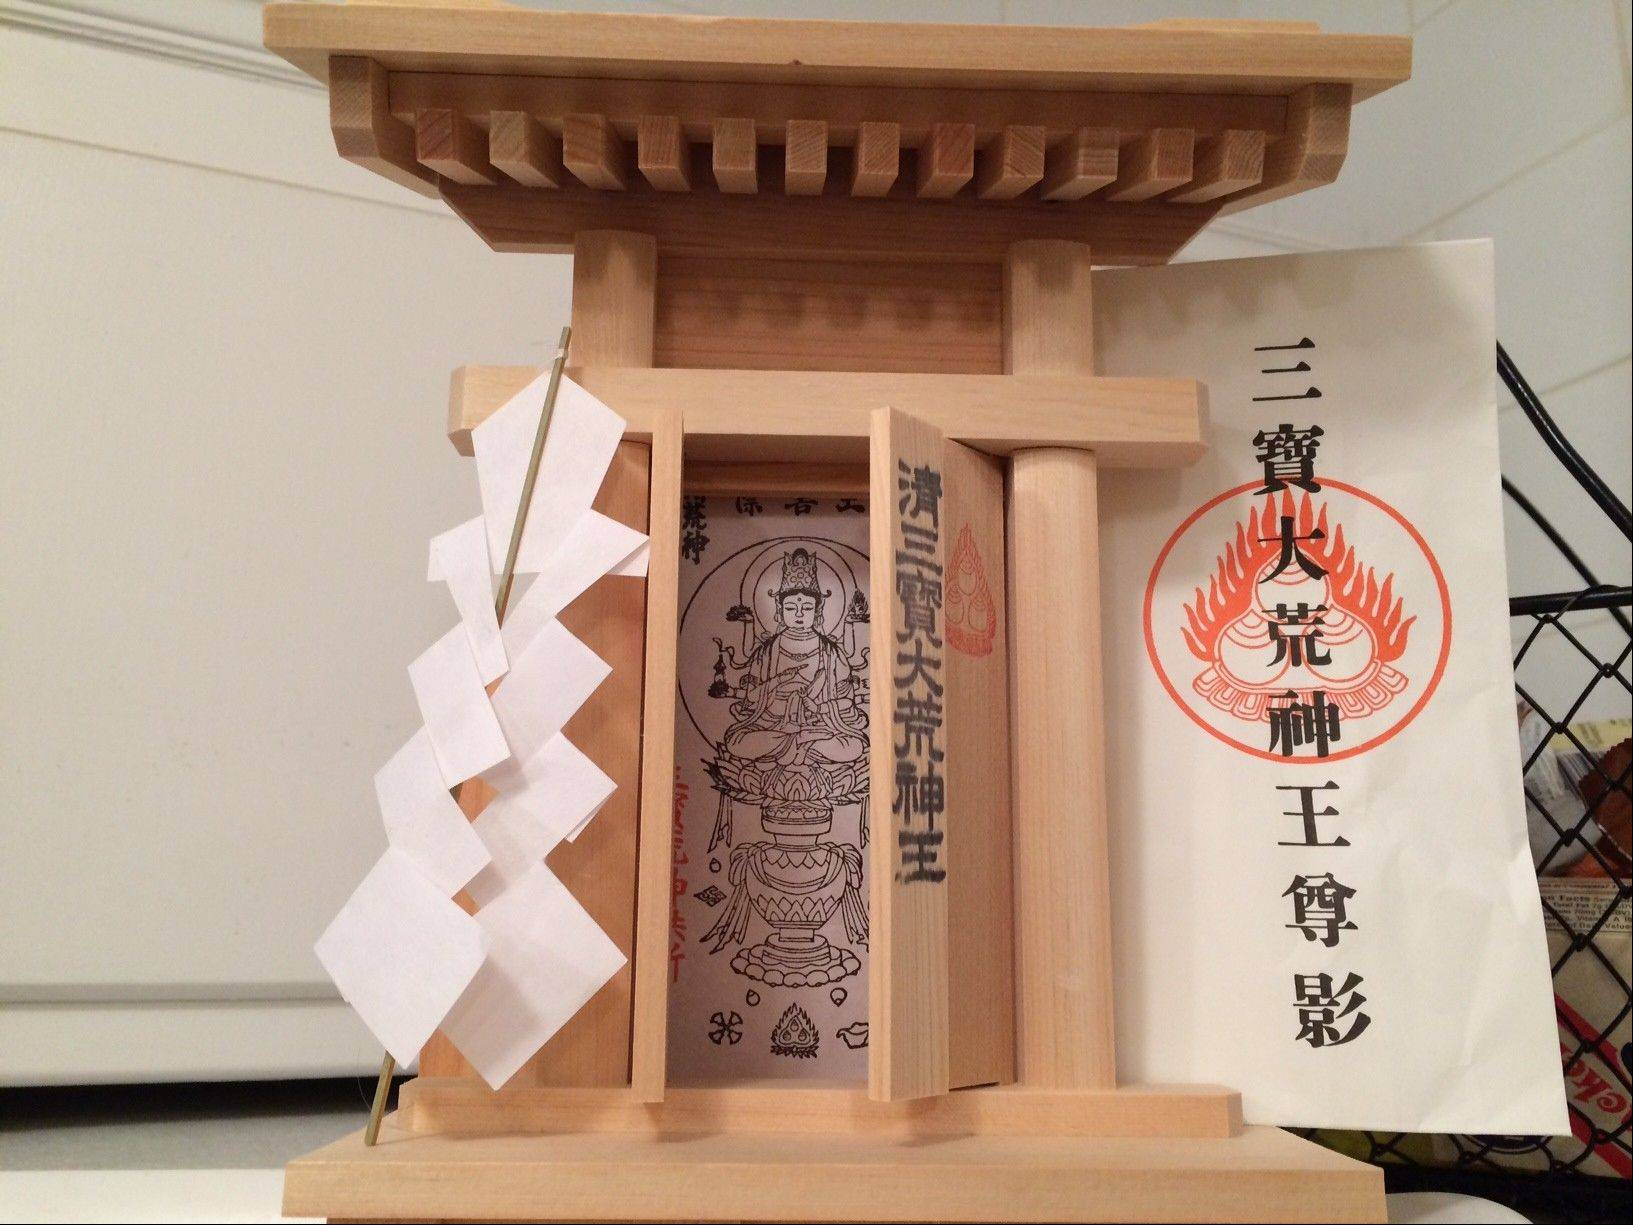 This shrine with an image of the Kojin, also known as the fire god, was purchased on a pilgrimage to Kiyoshikojin Seicho-ji, a temple complex north of Osaka, Japan. The temple is the seat of Japan's most prominent shrine to Kojin, and vendors in the area sell shrines like this one.